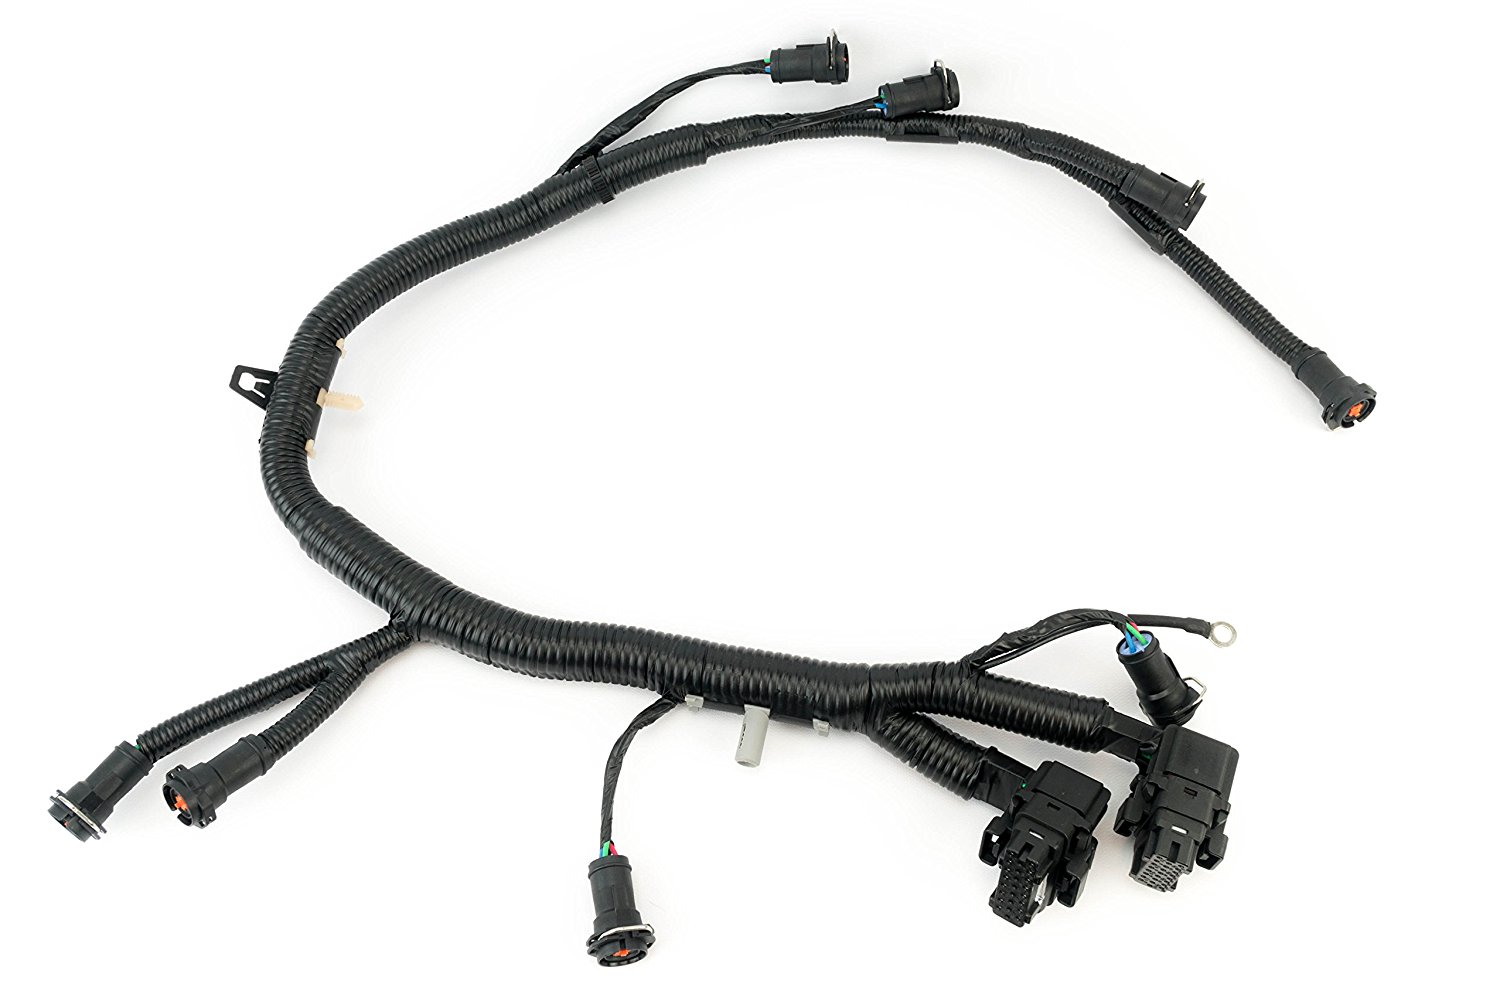 hight resolution of fuel injector control module ficm harness this wire harness connects the fuel injectors on your 6 0 powerstroke diesel engine to the ficm module